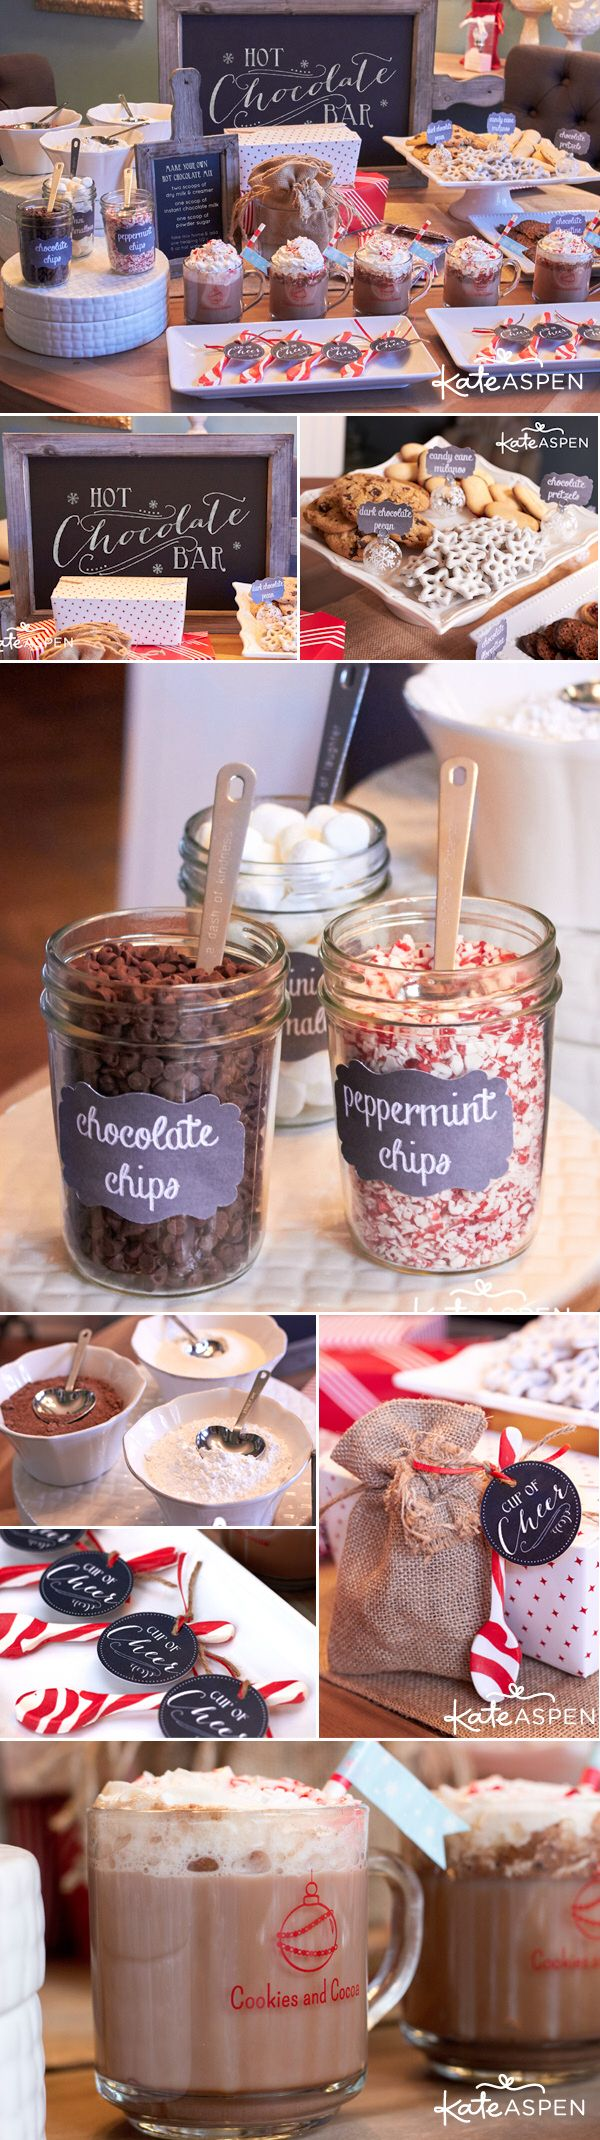 Give Your Winter Wedding Guests A Little Something To Warm Their Hearts And Hands By Setting Up Self Serve Hot Chocolate Bar With All The Fixings